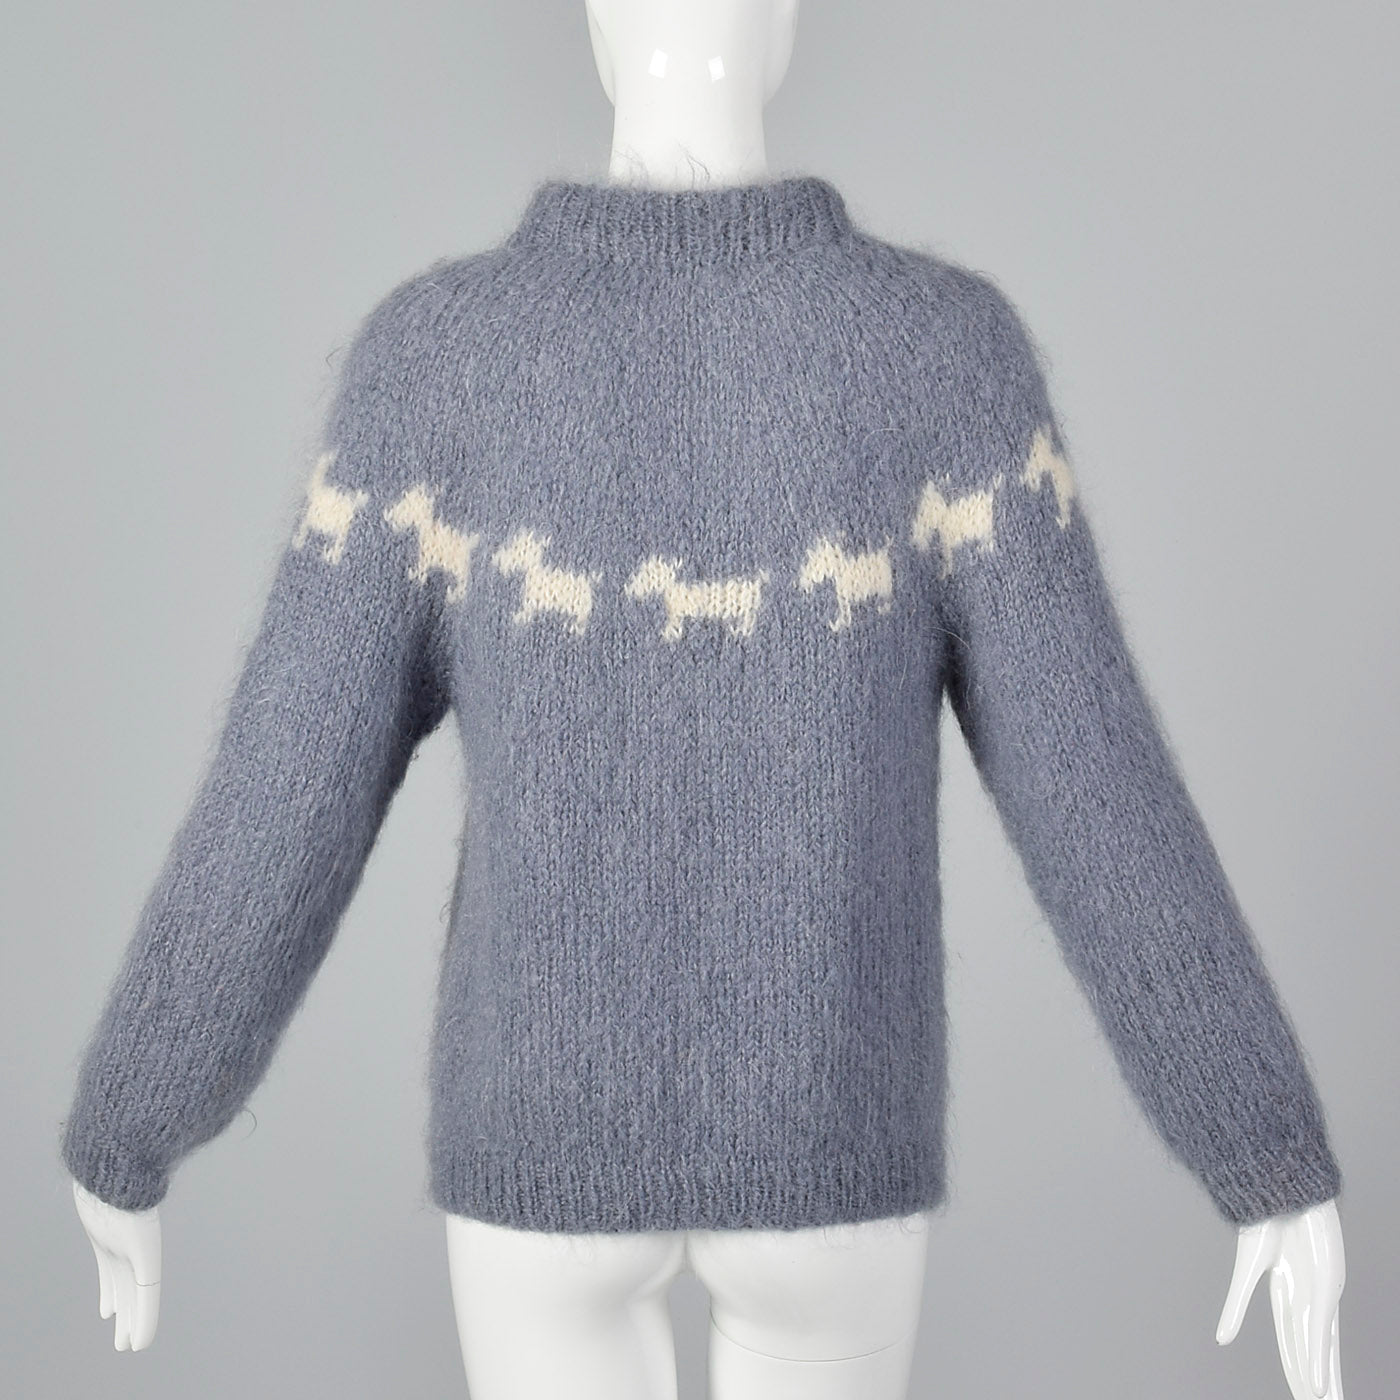 1960s Hand Knit Novelty Scotty Dog Sweater